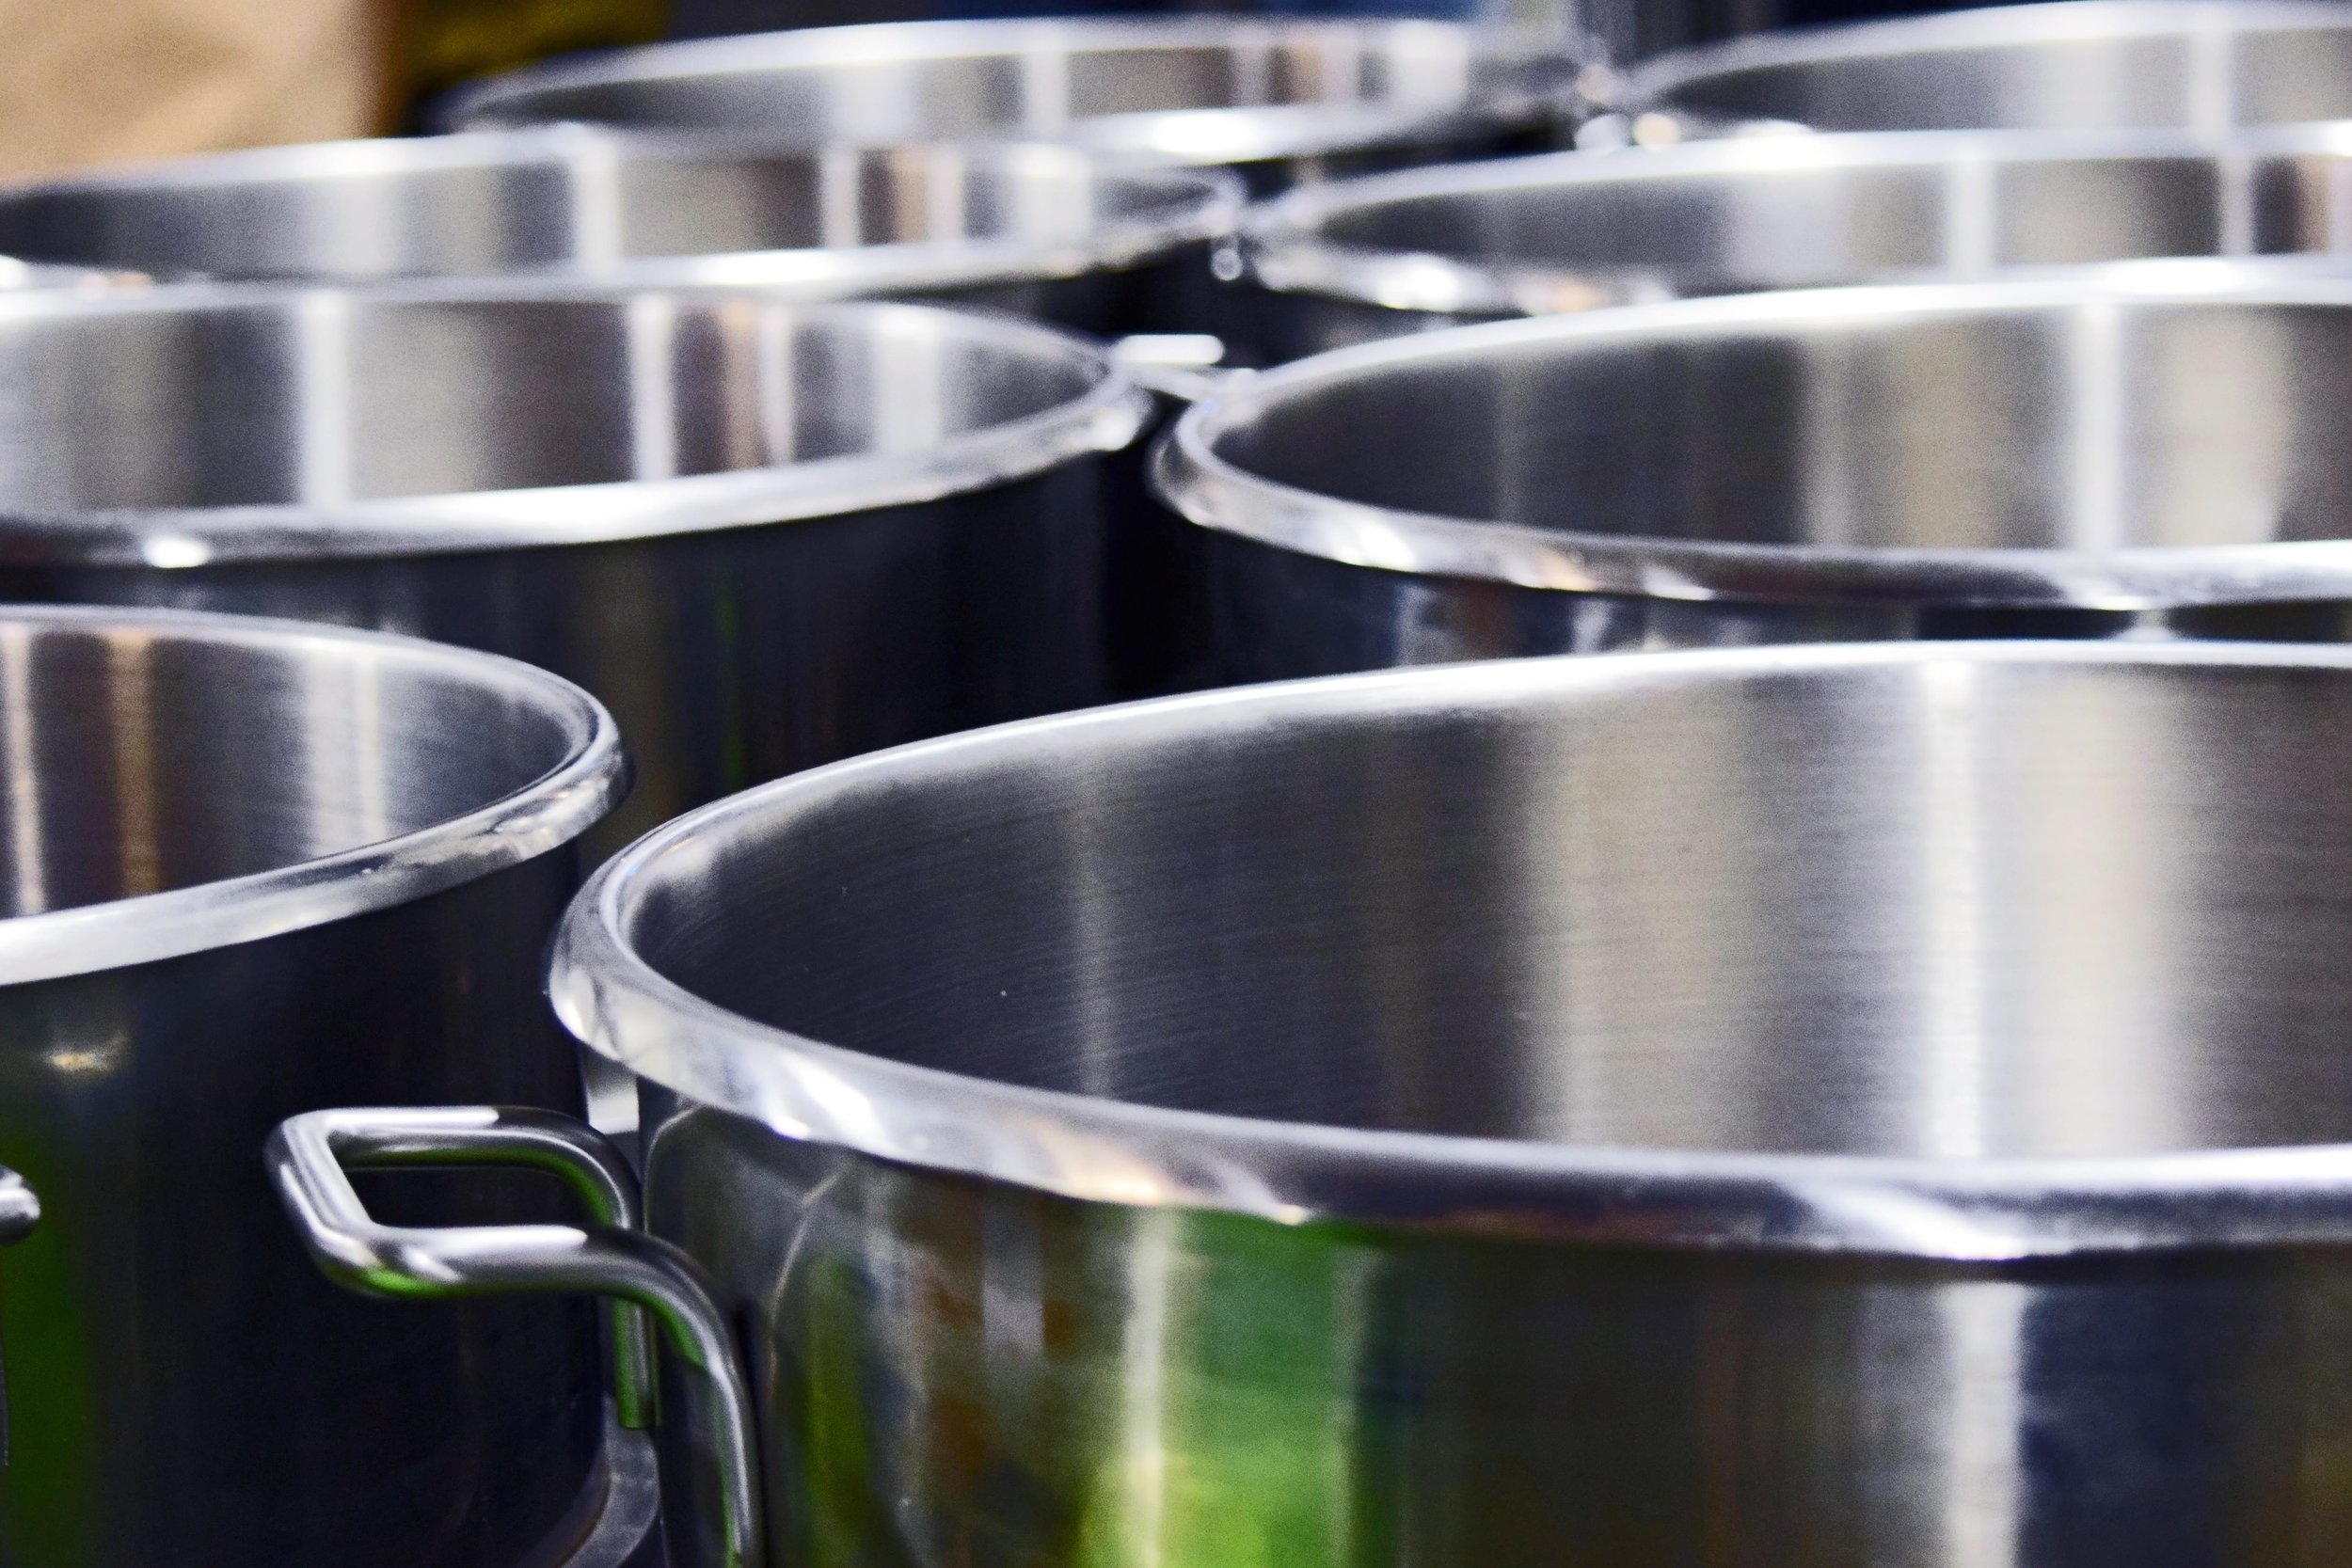 Hobart Mixing Bowls - Taken At A Production Facility in Spokane Valley, WA 08/2016